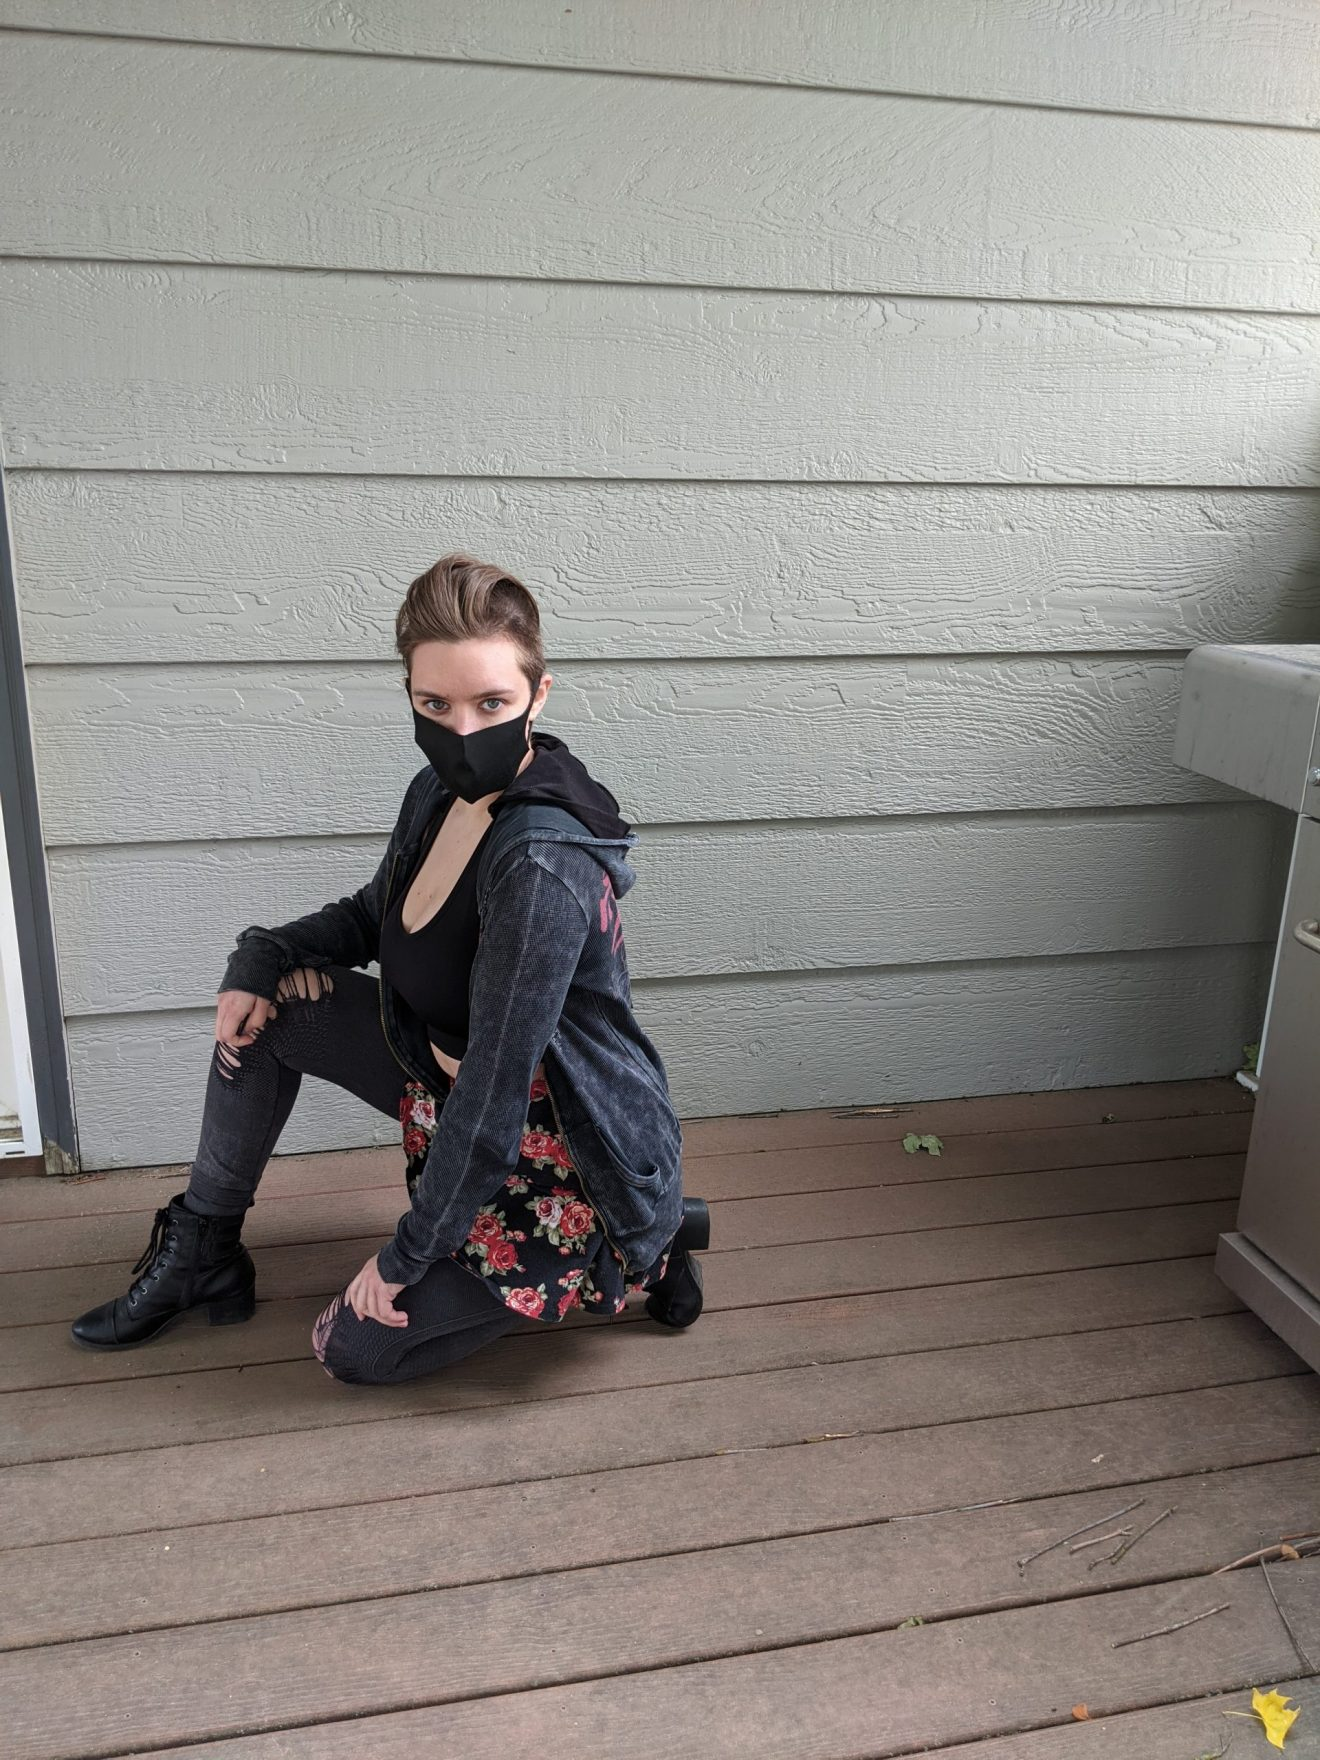 Beautiful Heartache Alissa Ackerman Story Behind The Cloth fashion blog edgy sporty romantic outfit 22 scaled